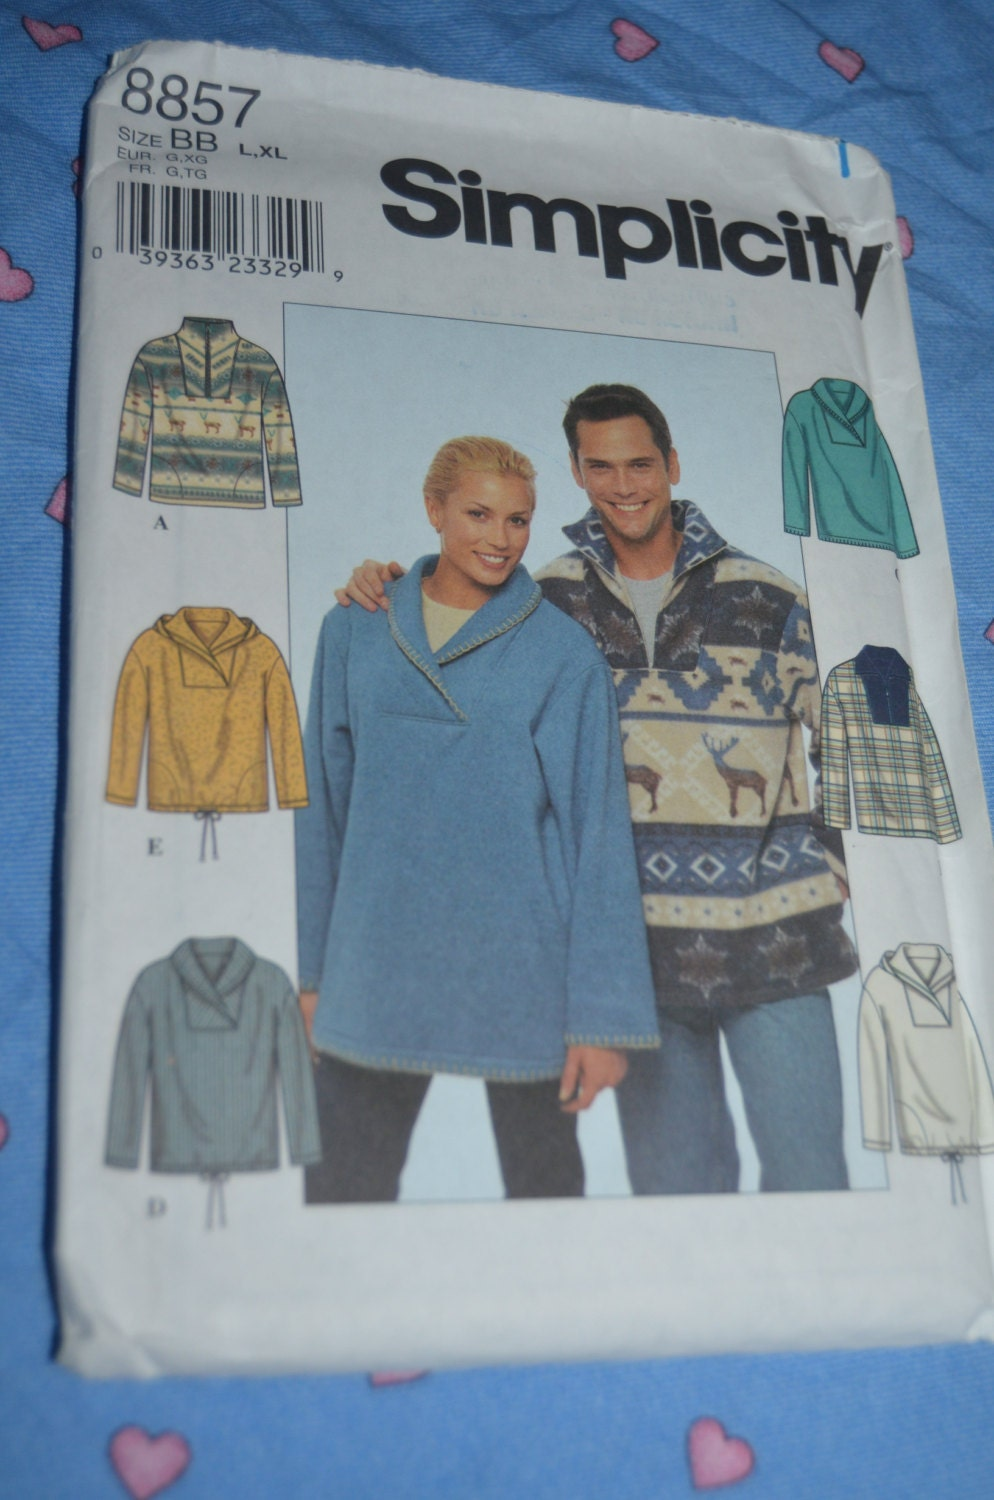 437db7527abc Simplicity 8857 Mens and Womens Knit-Fleece Top Sewing Pattern - UNCUT -  Sizes L - XL from DestinedRendezvous on Etsy Studio